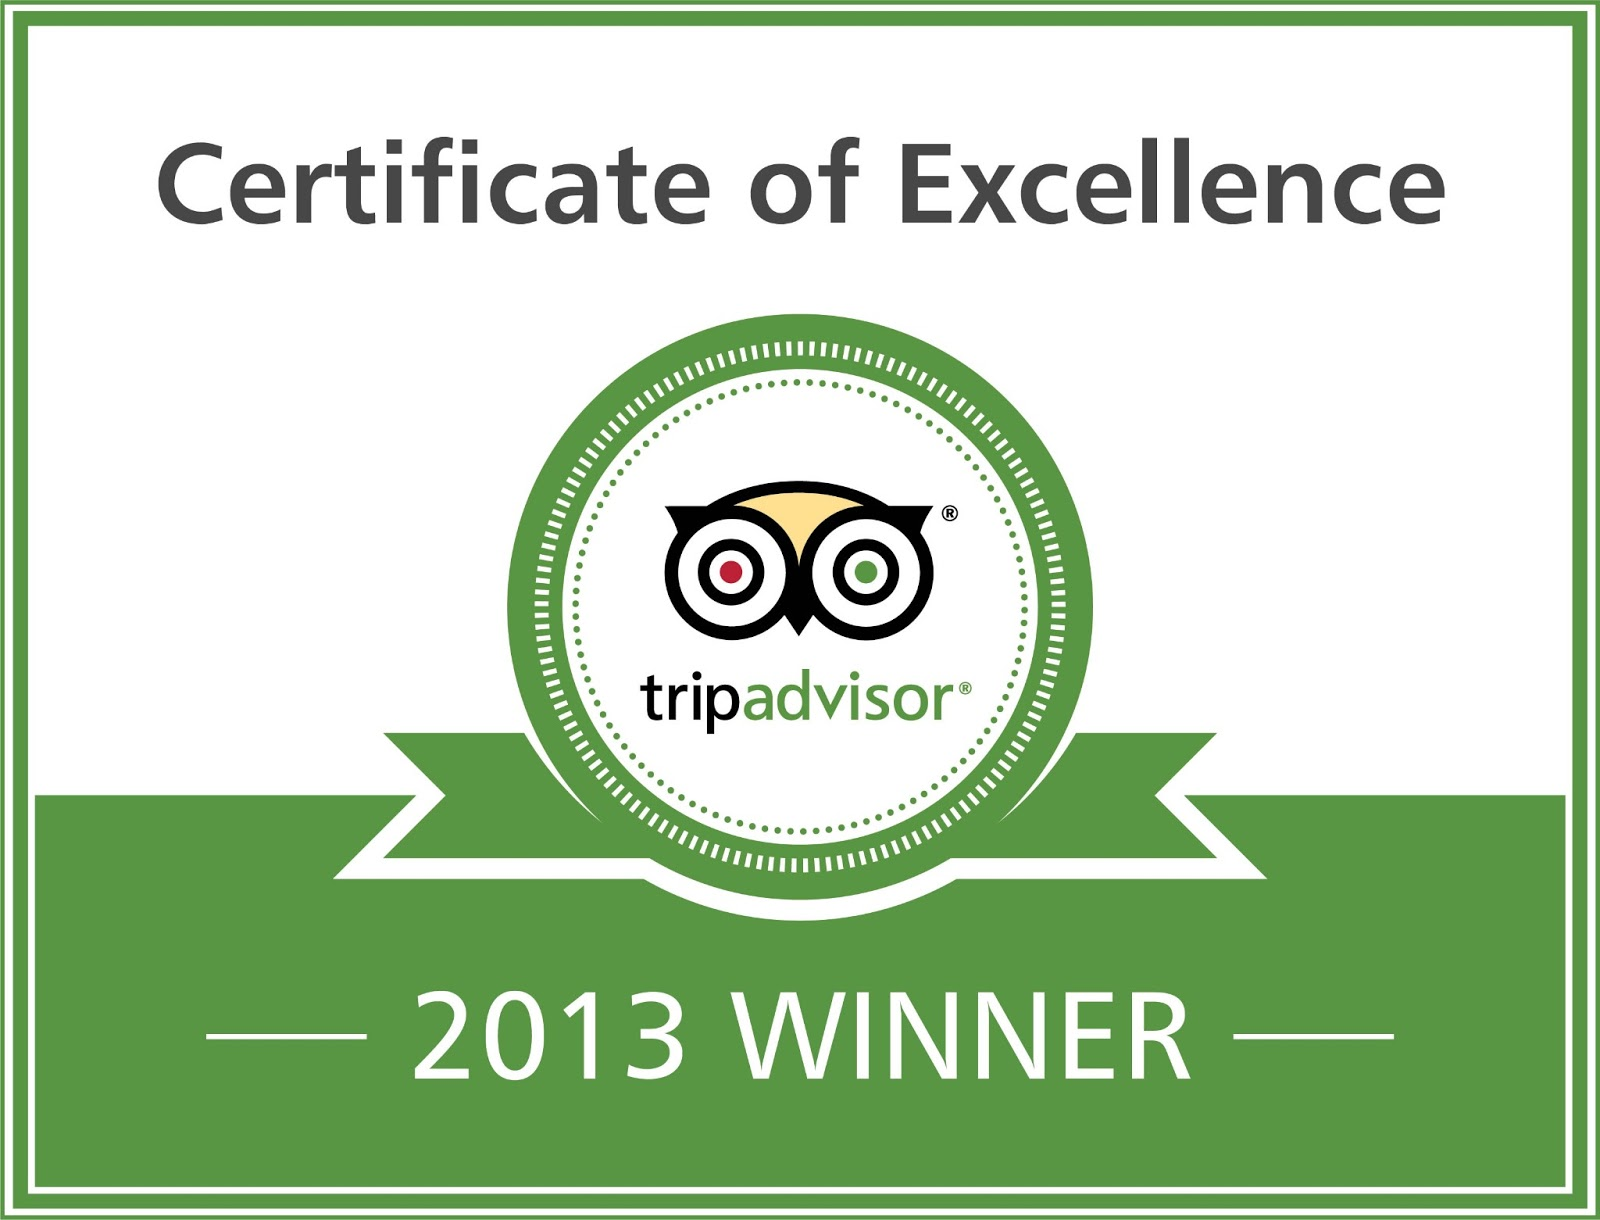 For the third consecutive year Trip Advisor grants us the Certificate of Excellence in Service